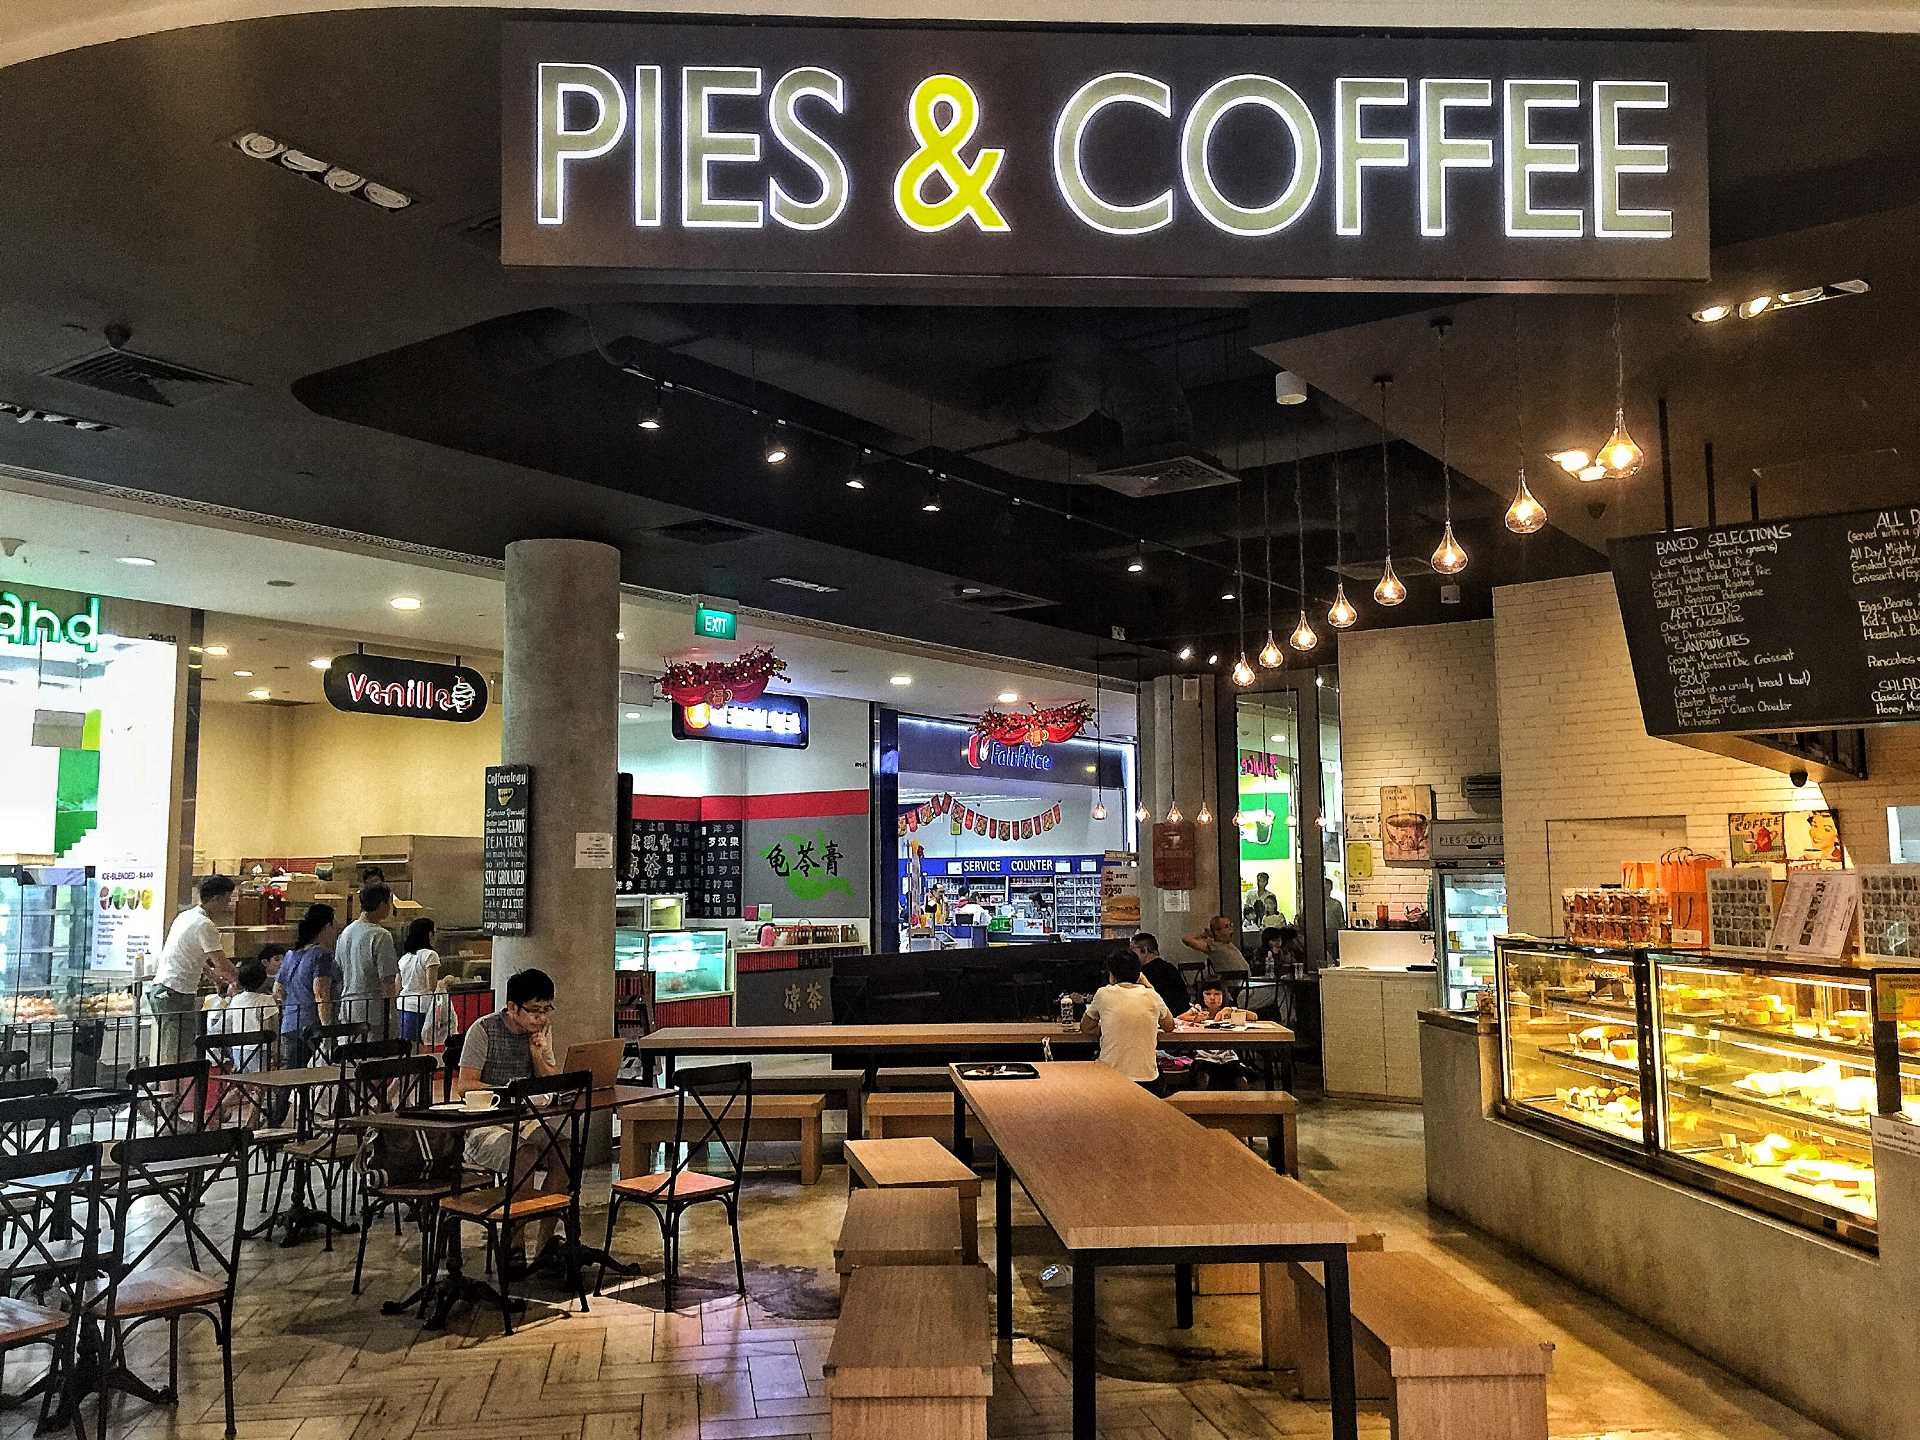 Pies & Coffee - ARC Shop